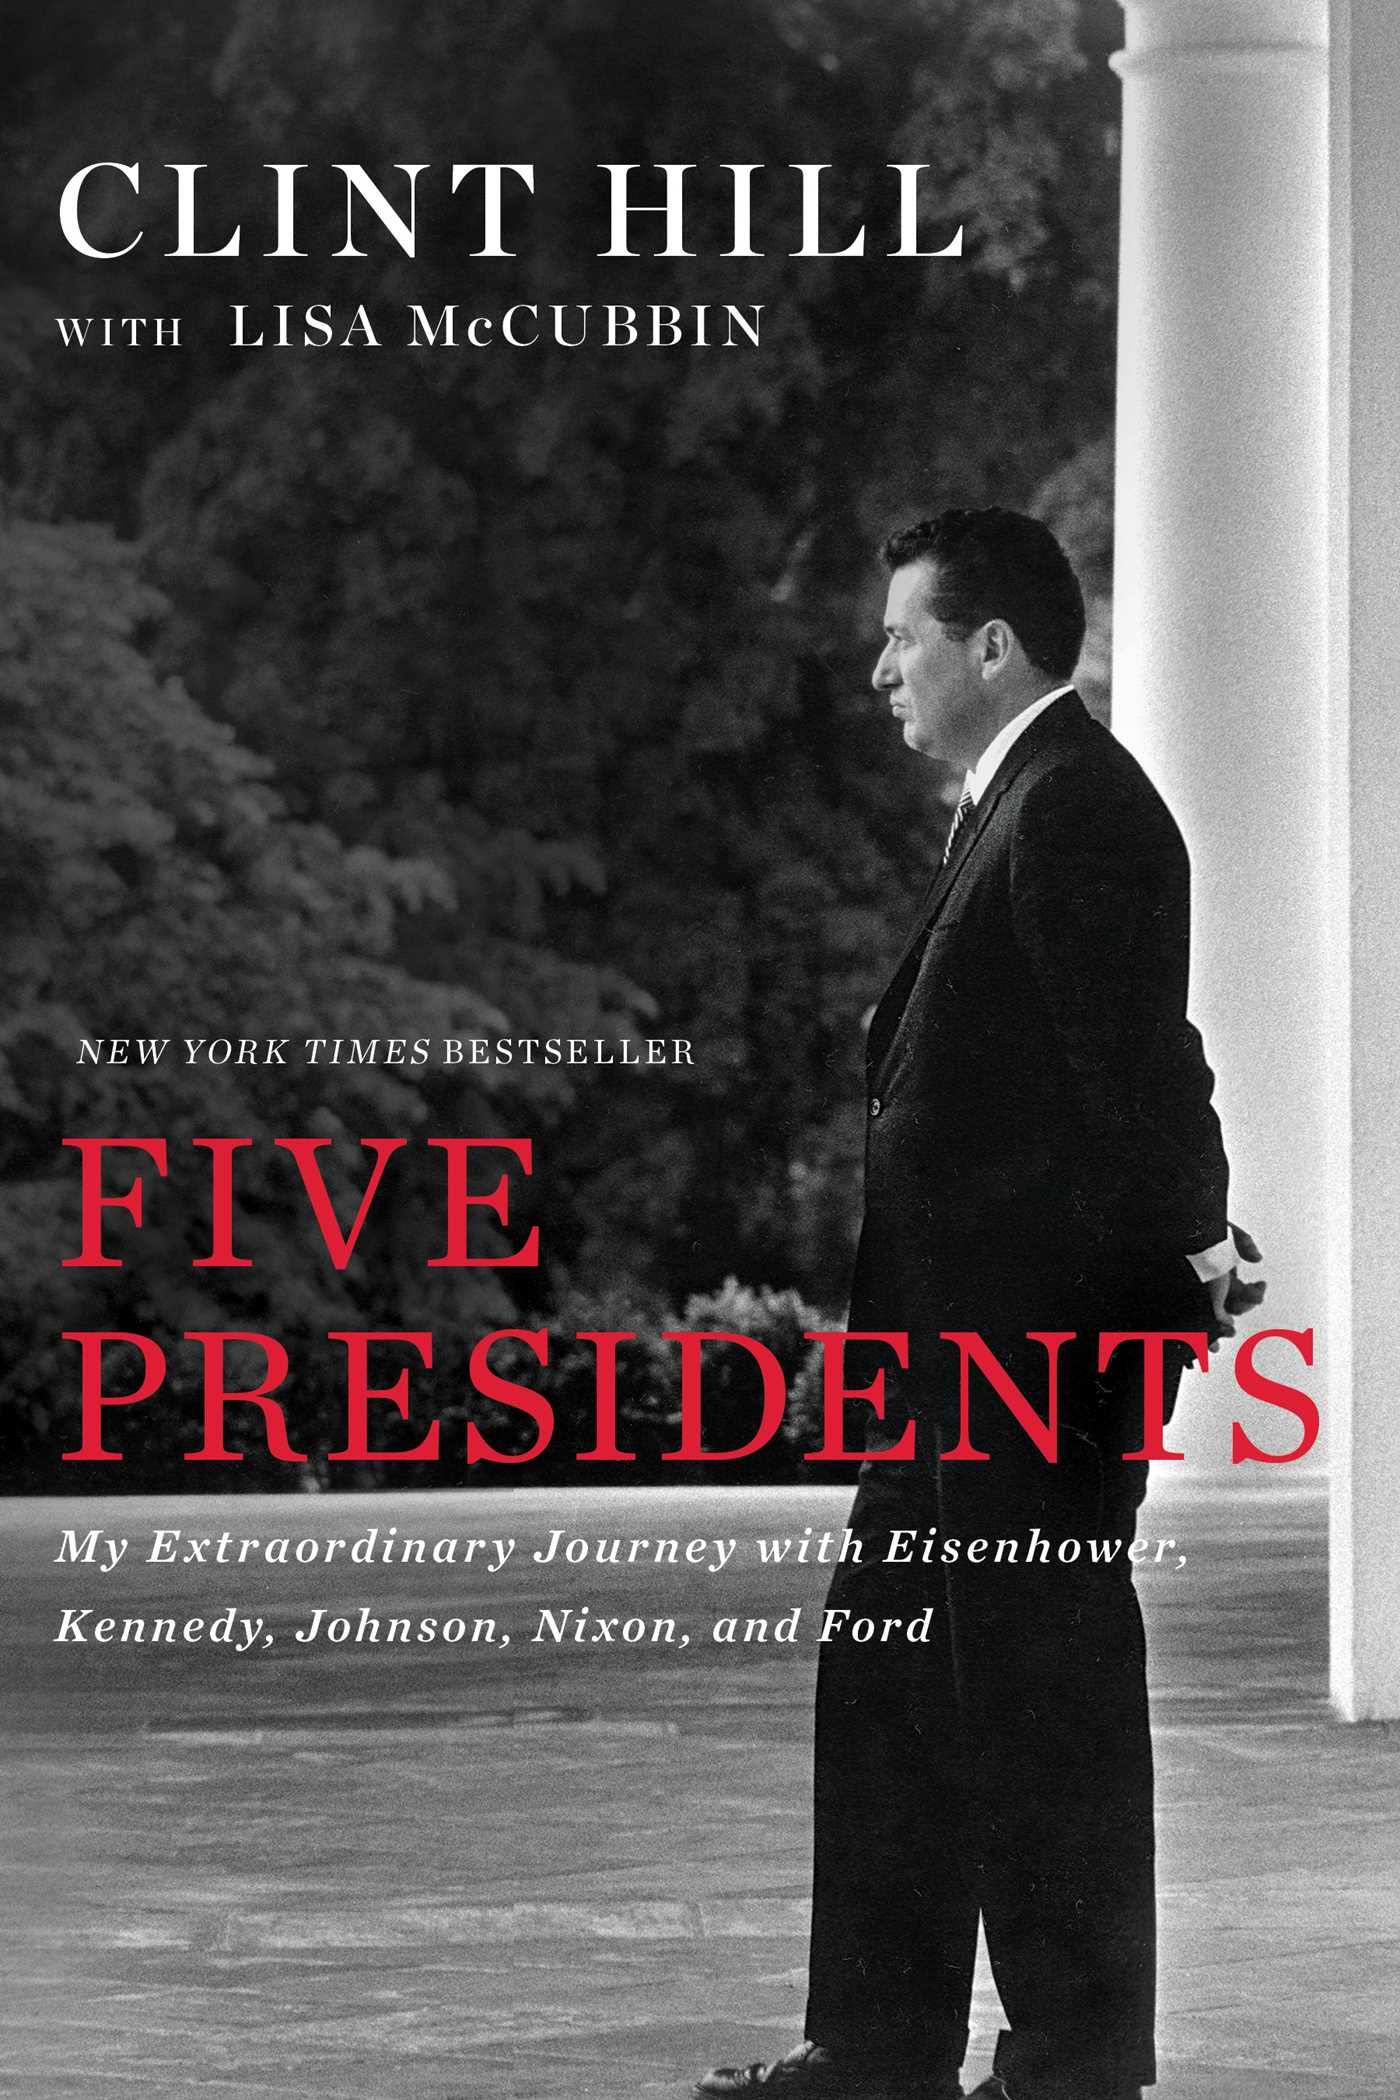 Five presidents 9781476794174 hr